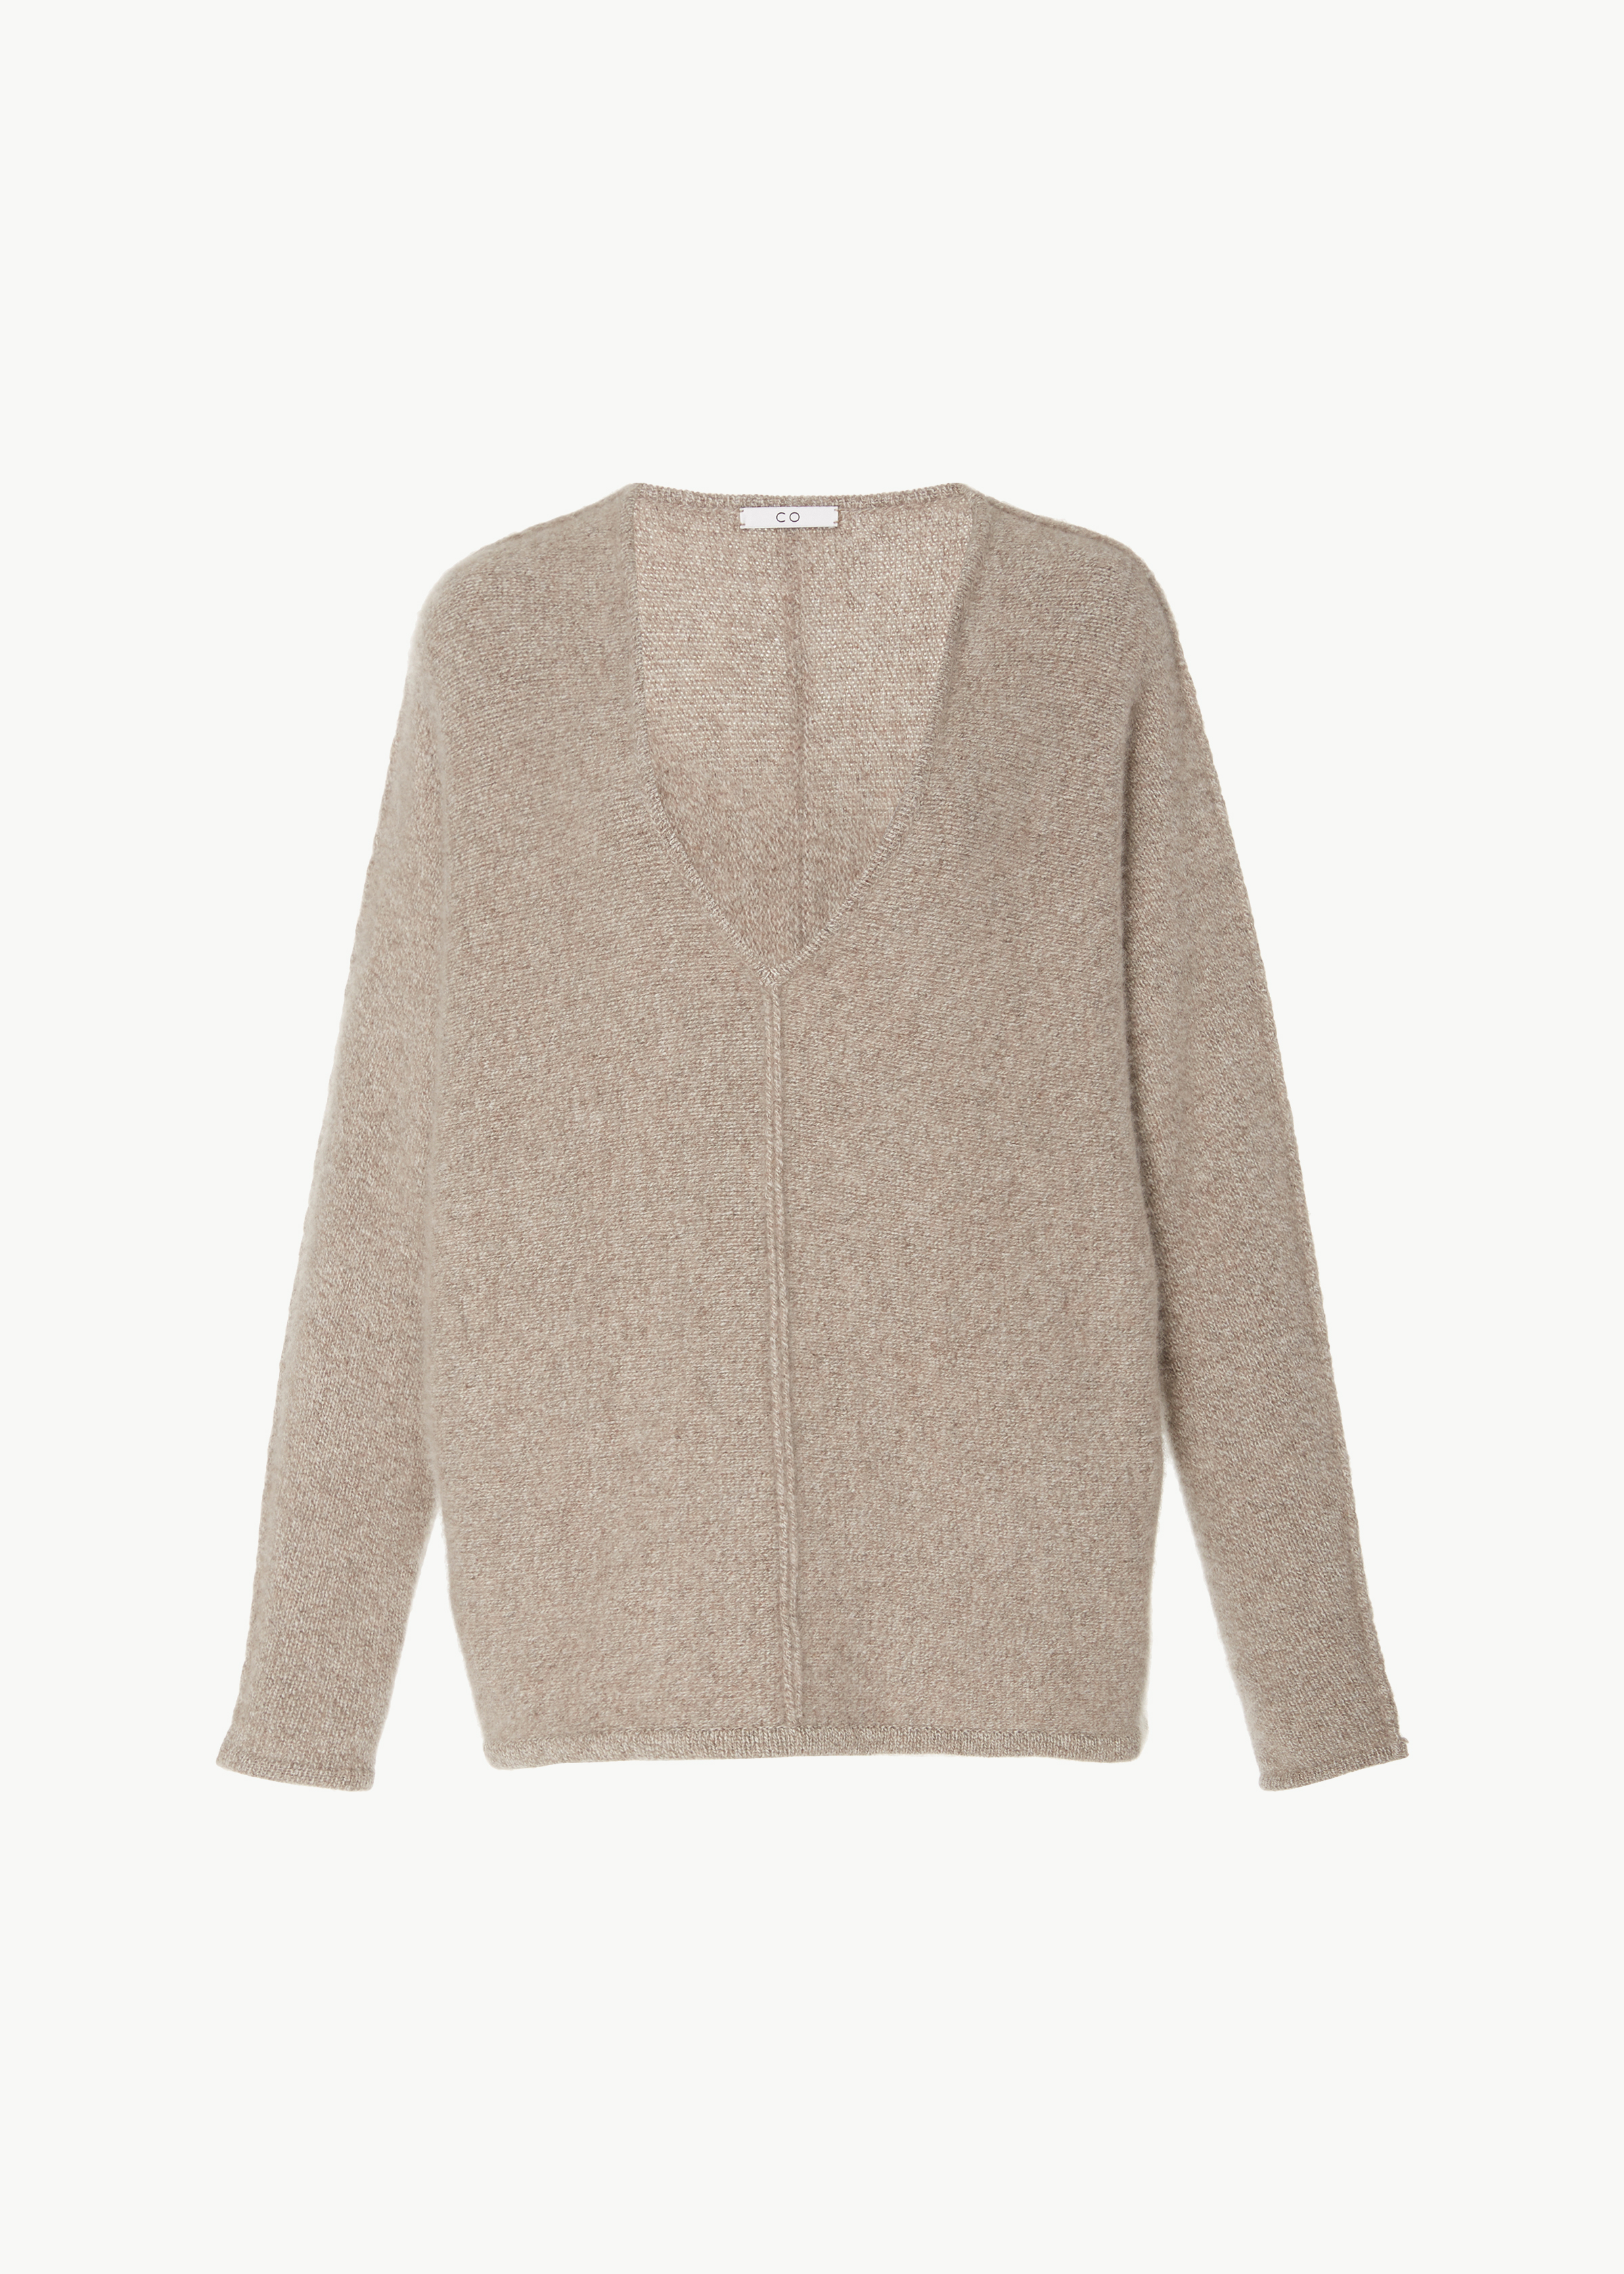 V-Neck Cashmere Sweater - Charcoal in Light Taupe by Co Collections